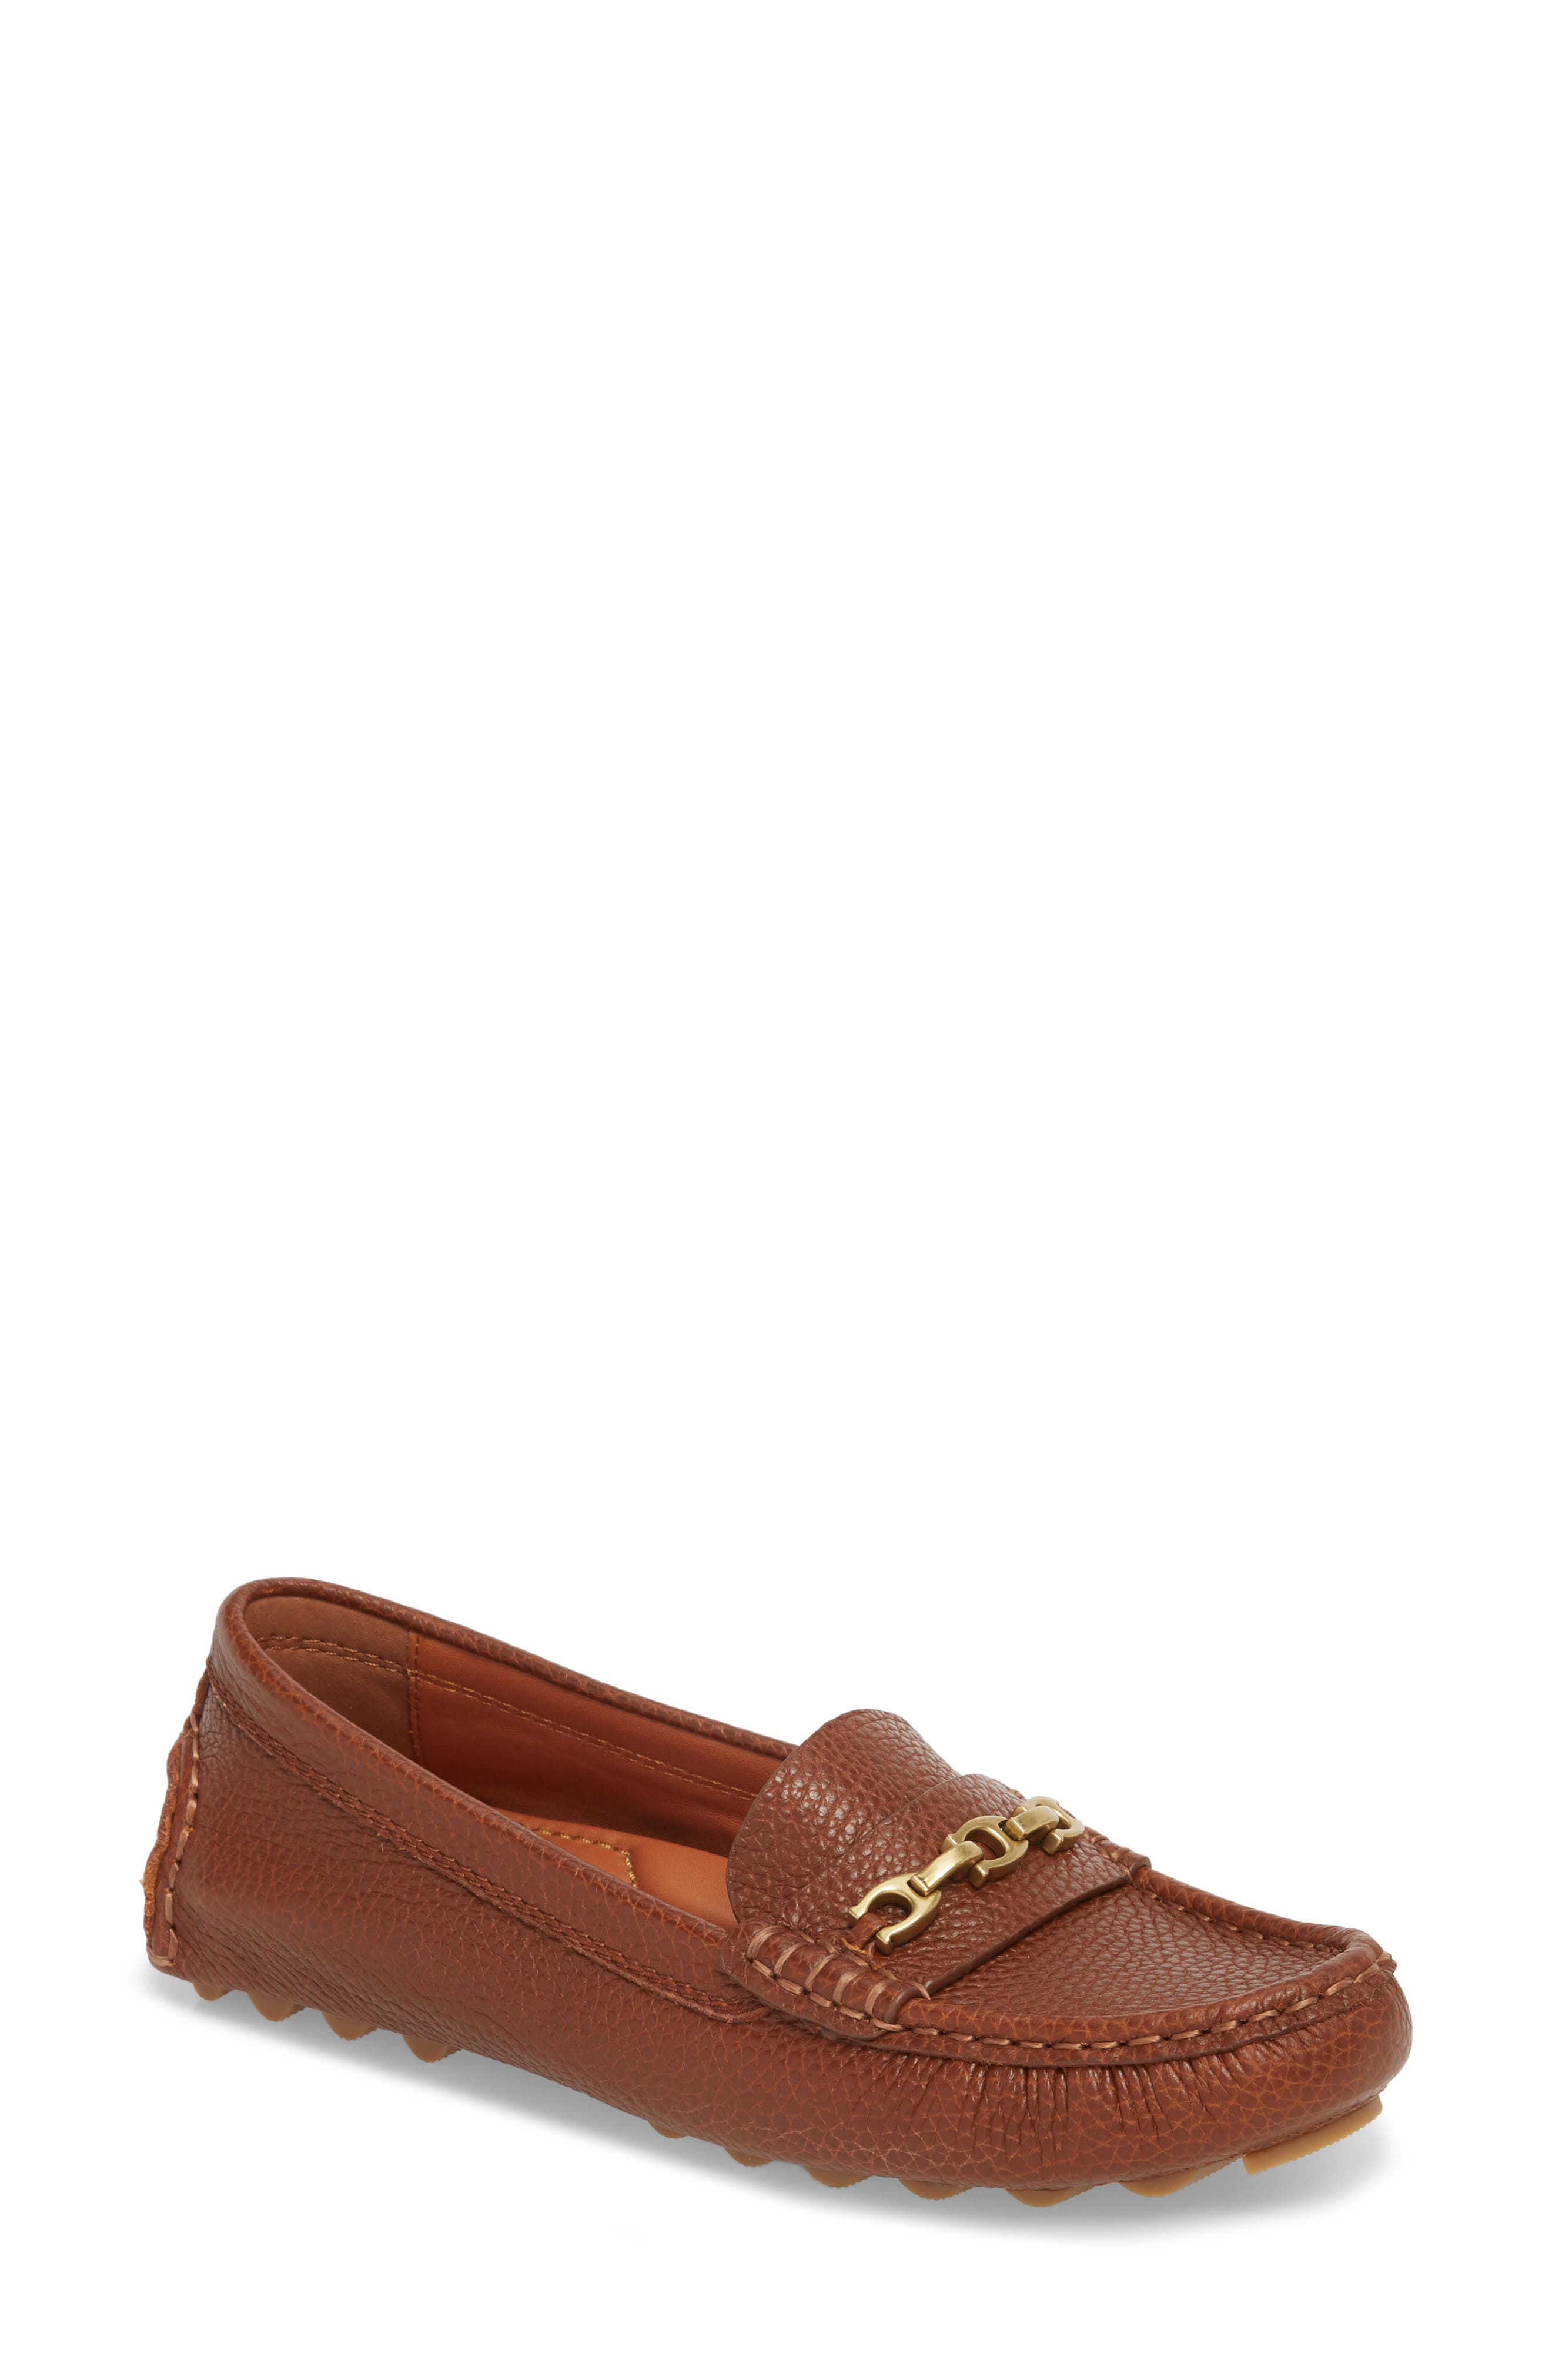 Crosby Driver Loafer,                             Main thumbnail 1, color,                             LION PEBBLED LEATHER